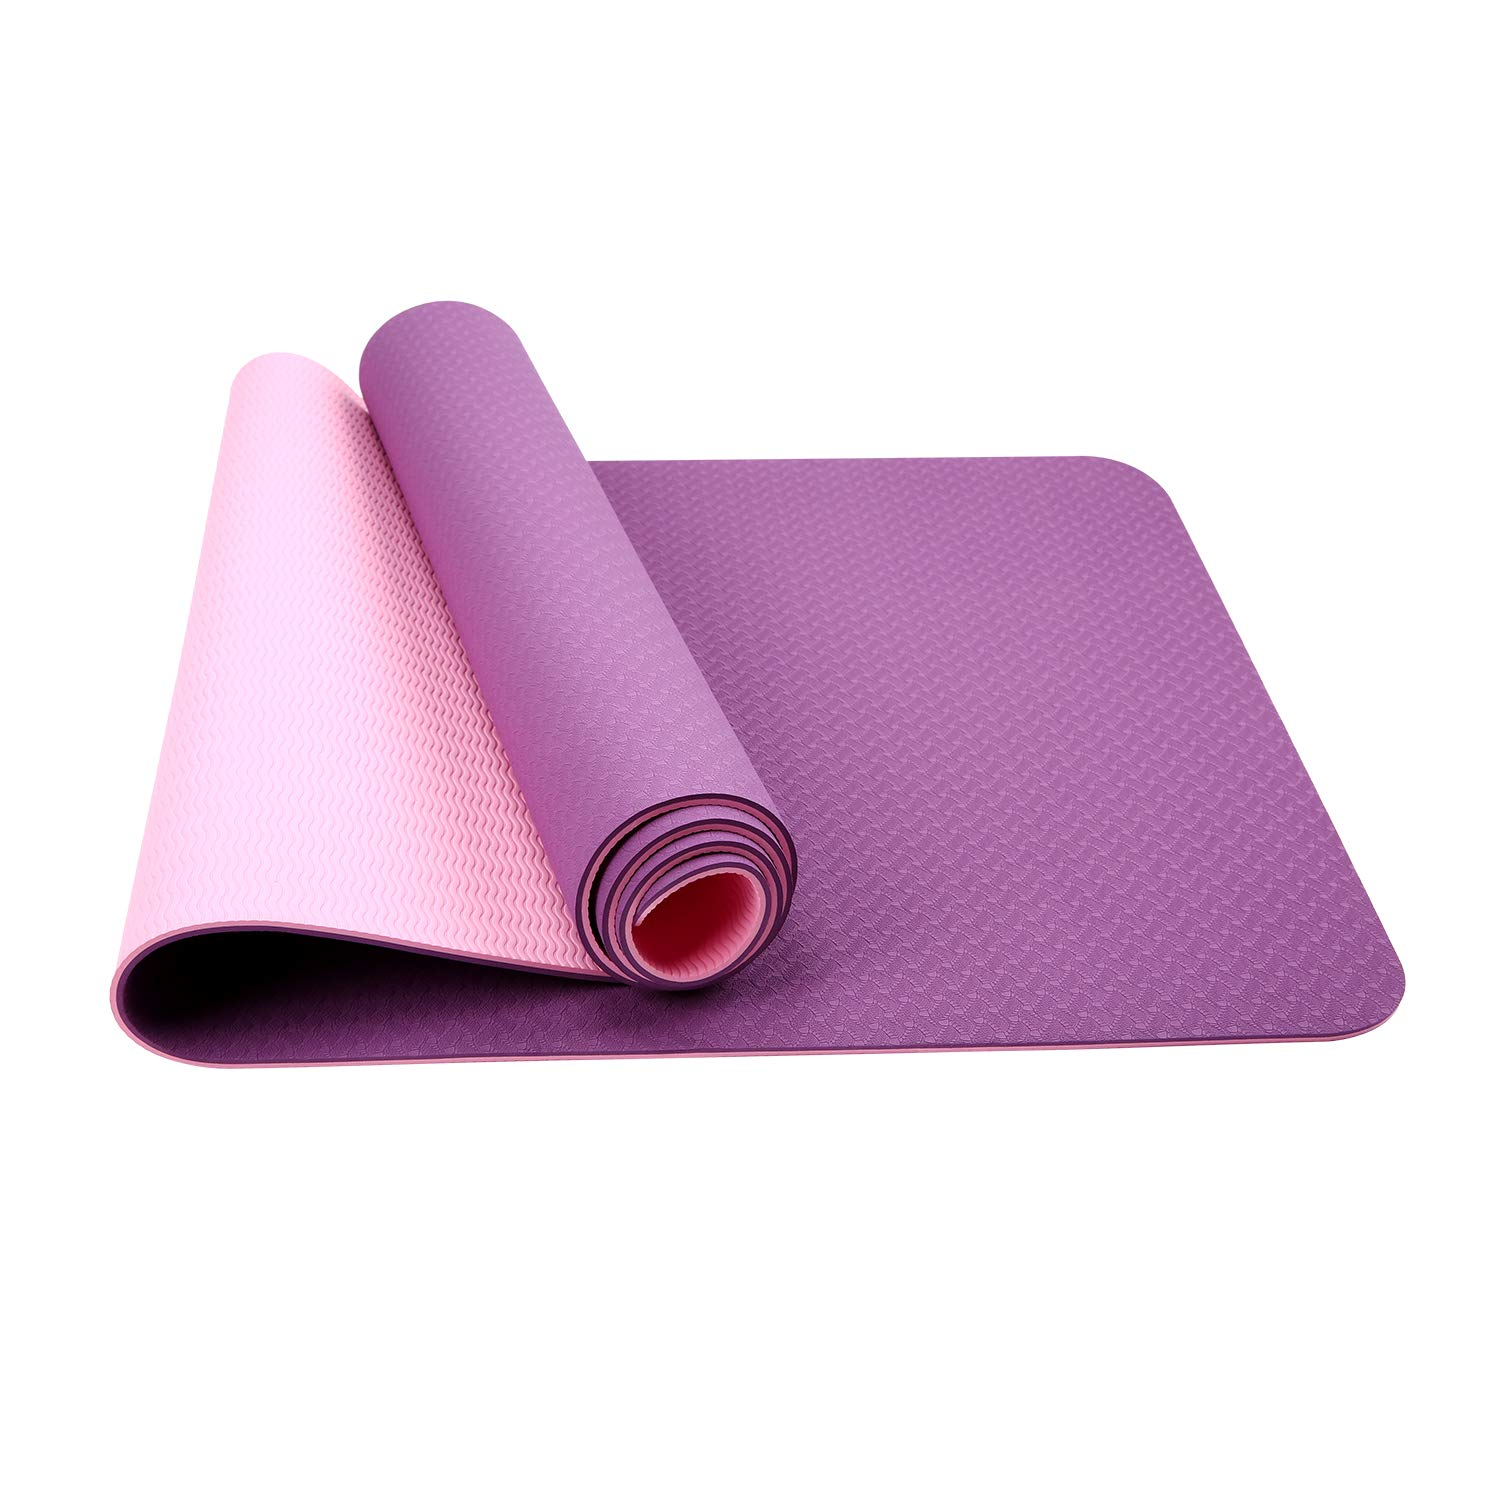 OTW Fit Yoga,Classic Extra Thick 1/4 and Long 72 Premium Eco Safe Yoga Mat, Non Slip Yoga Mats for Home or Travel with Carrying Bag